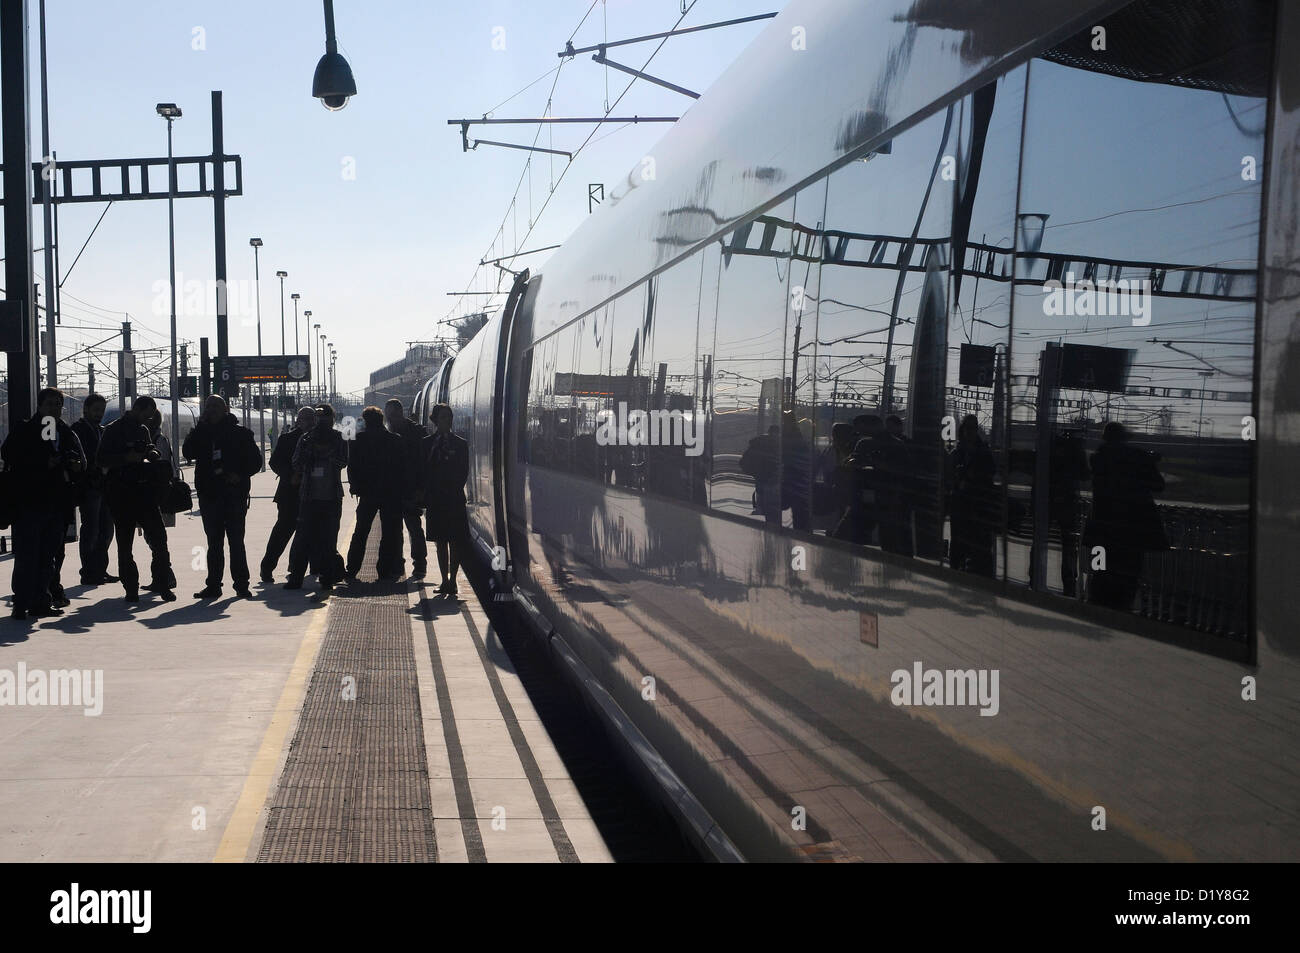 train station Spain opens high-speed rail link between Barcelona and Figueras  Barcelona-Figueres high-speed rail - Stock Image